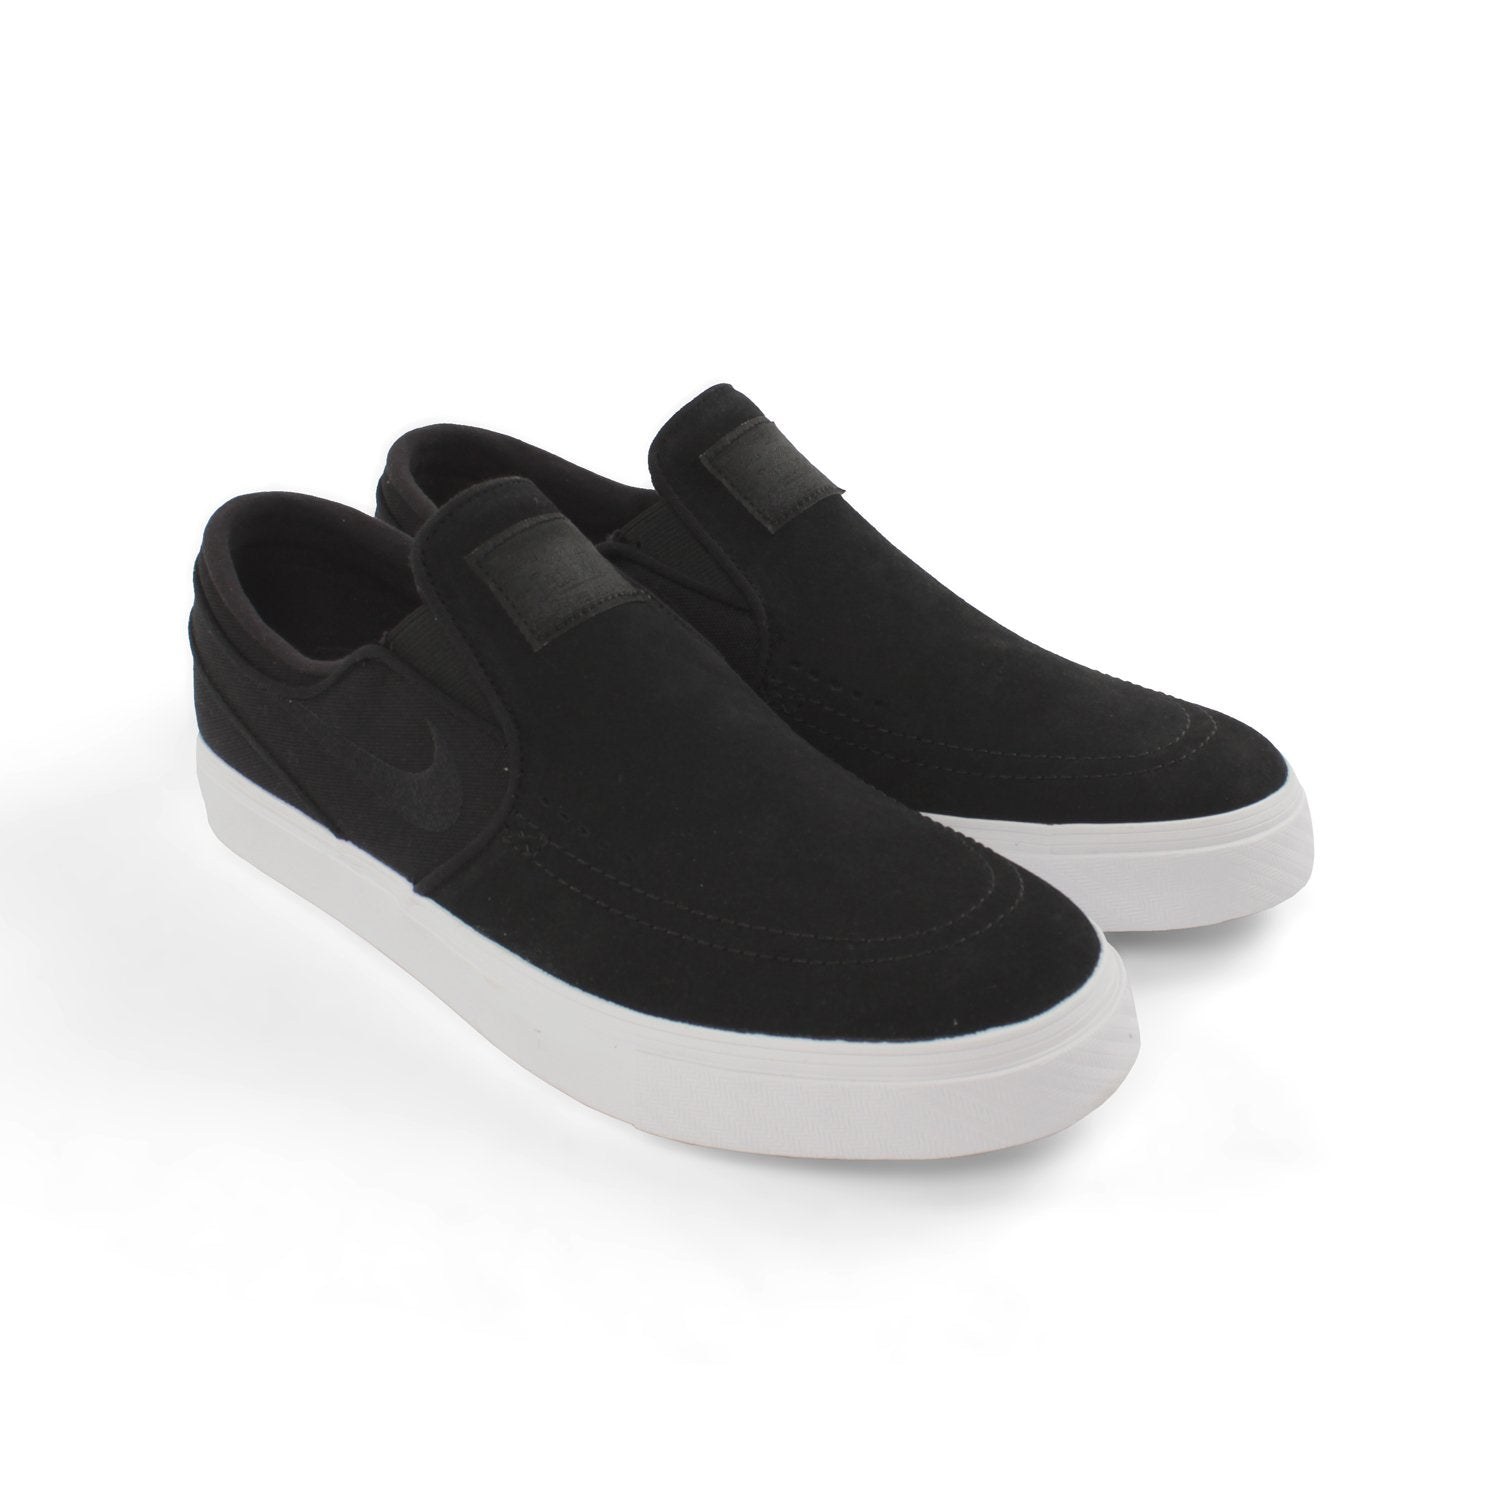 Nike SB Janoski Slip On Product Photo #2